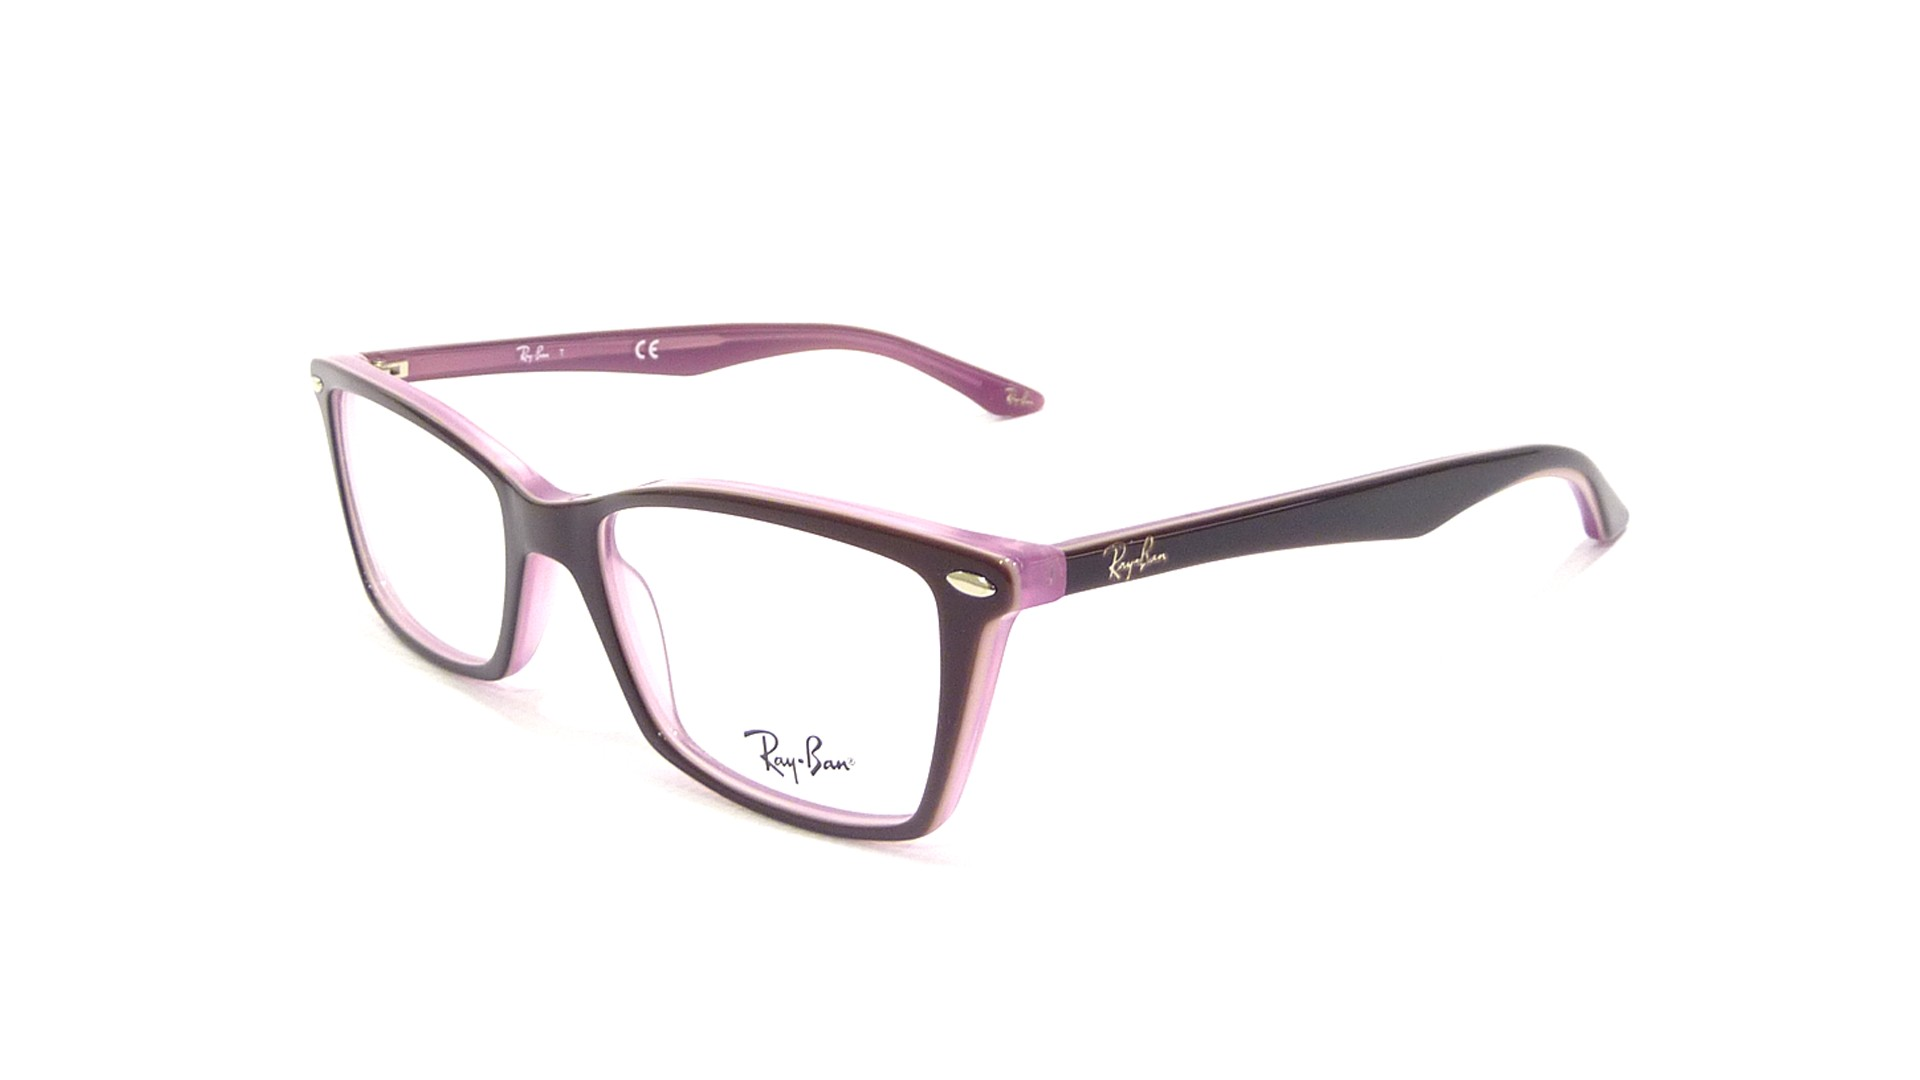 pink and brown ban eyeglasses cheap 171 heritage malta